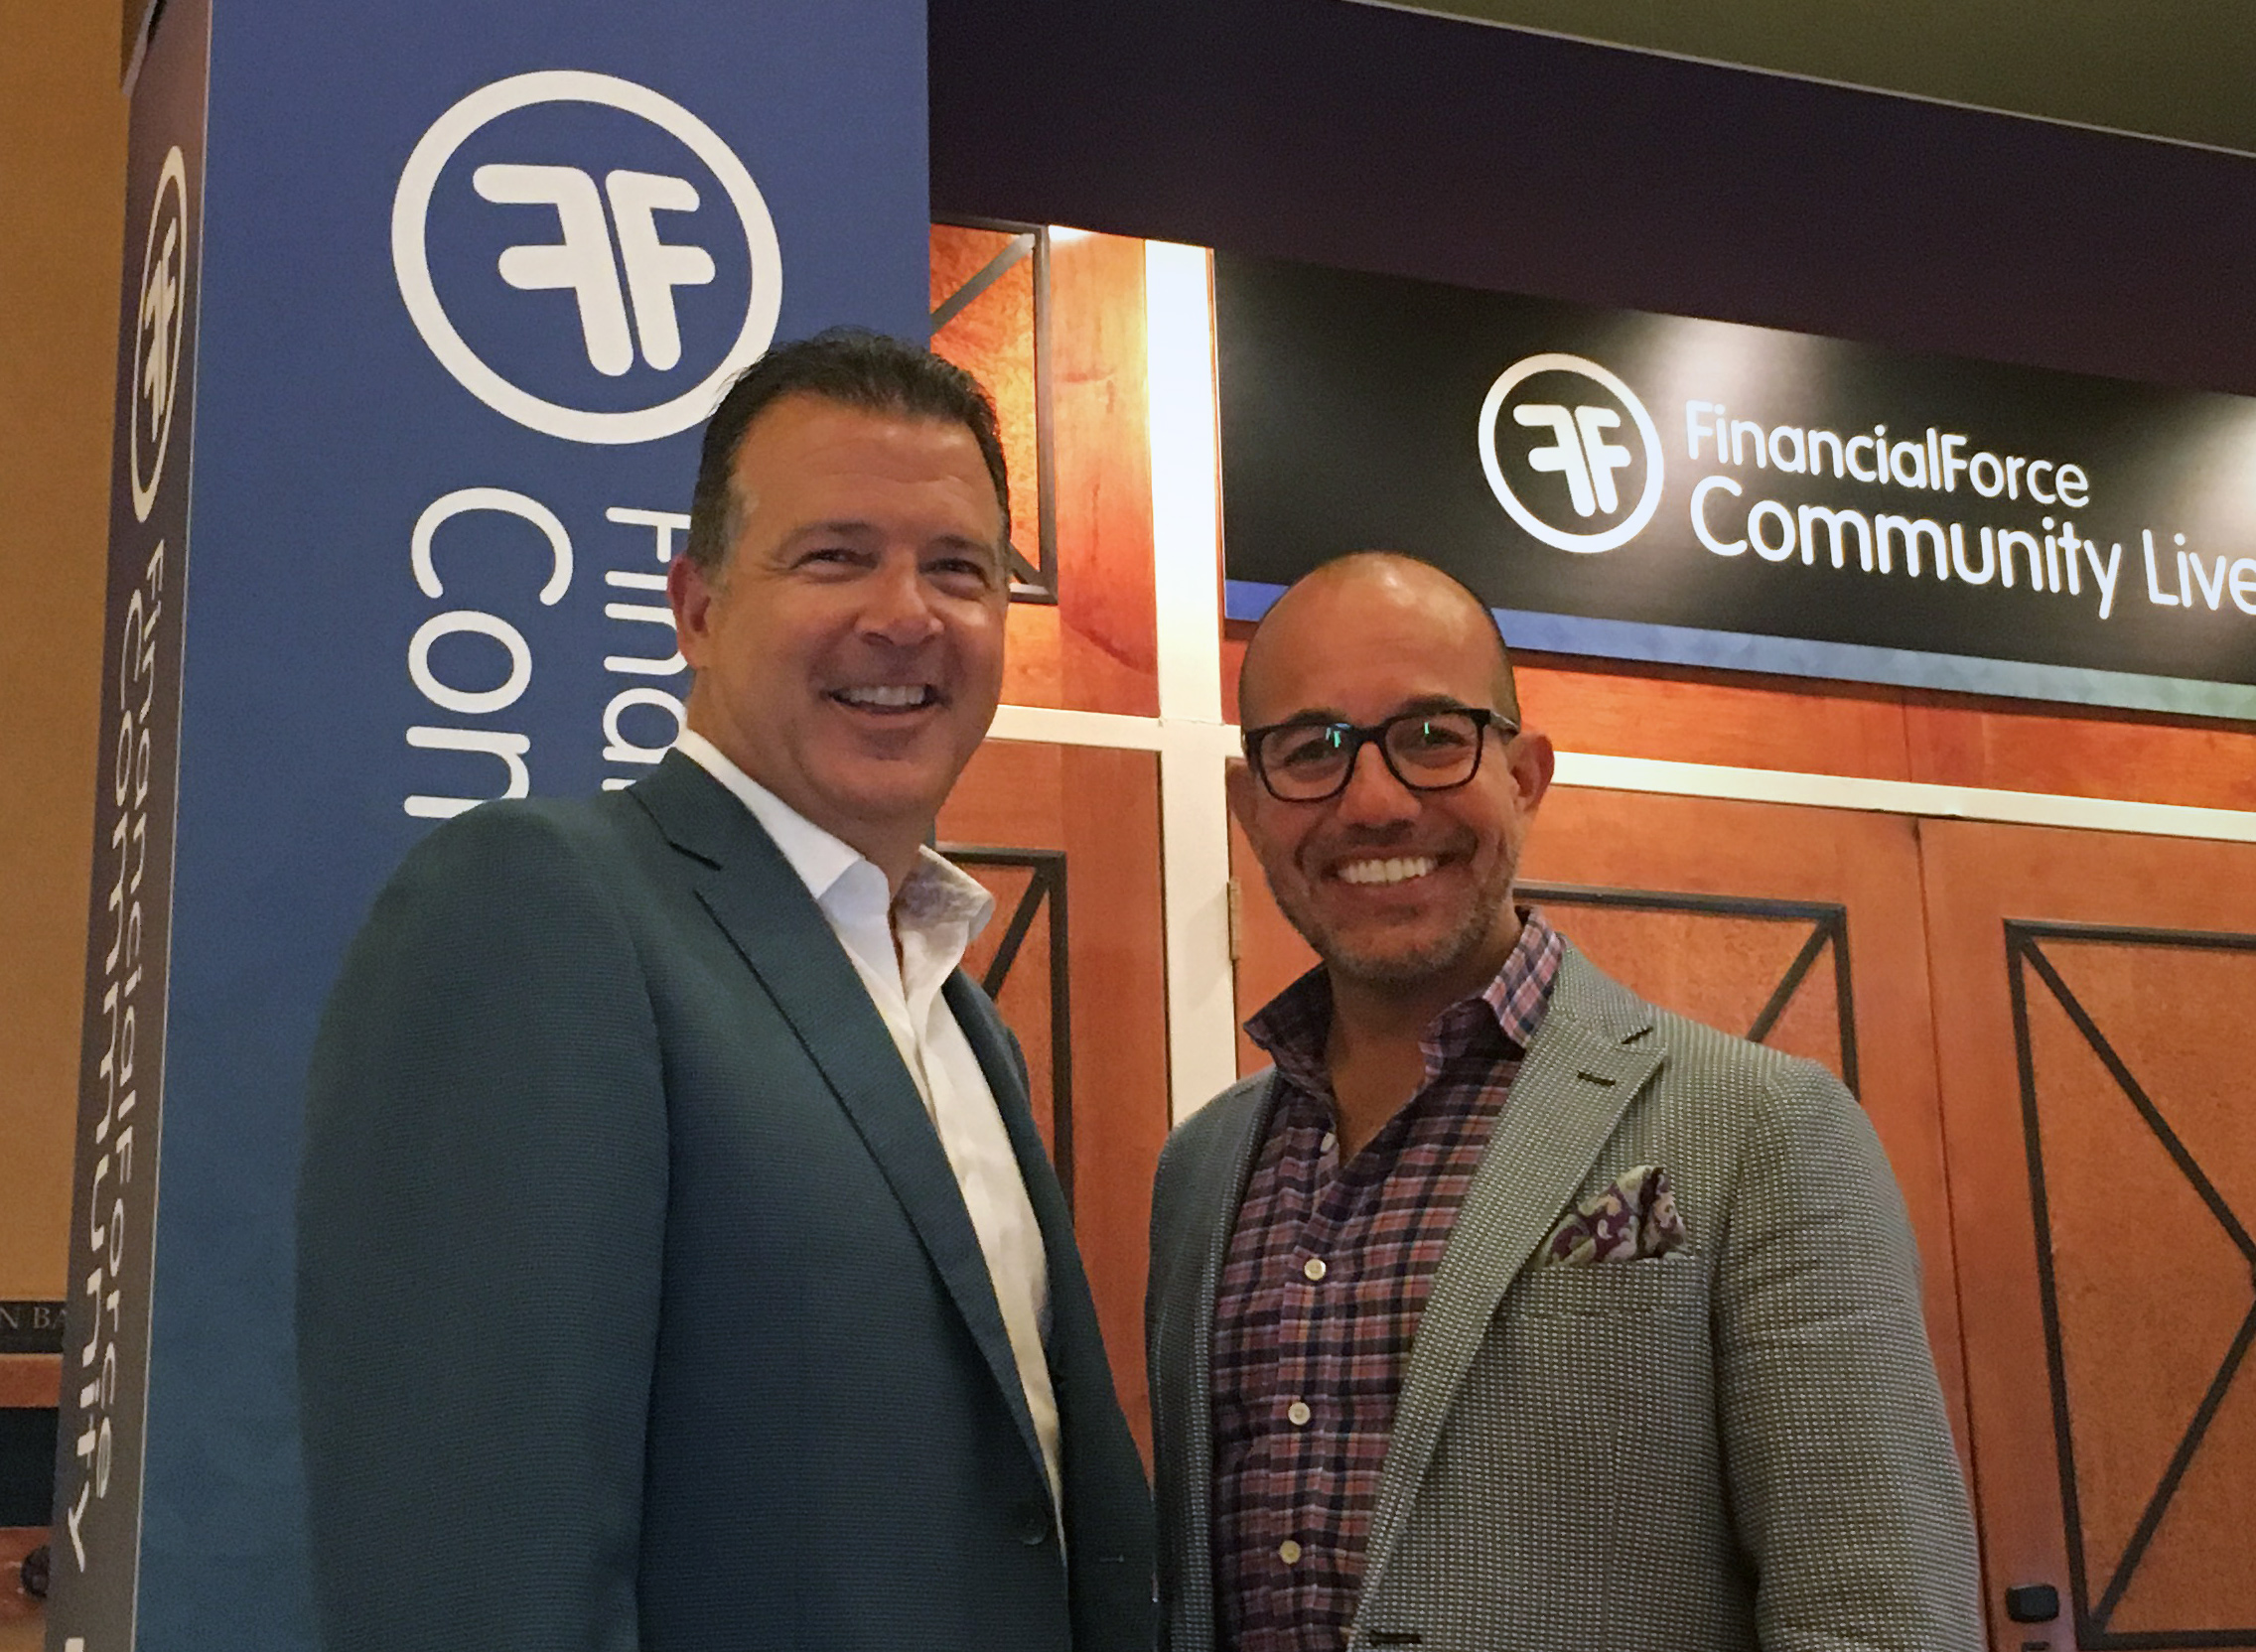 FinancialForce CEO Tod Nielsen (left) and CMO Fred Studer.